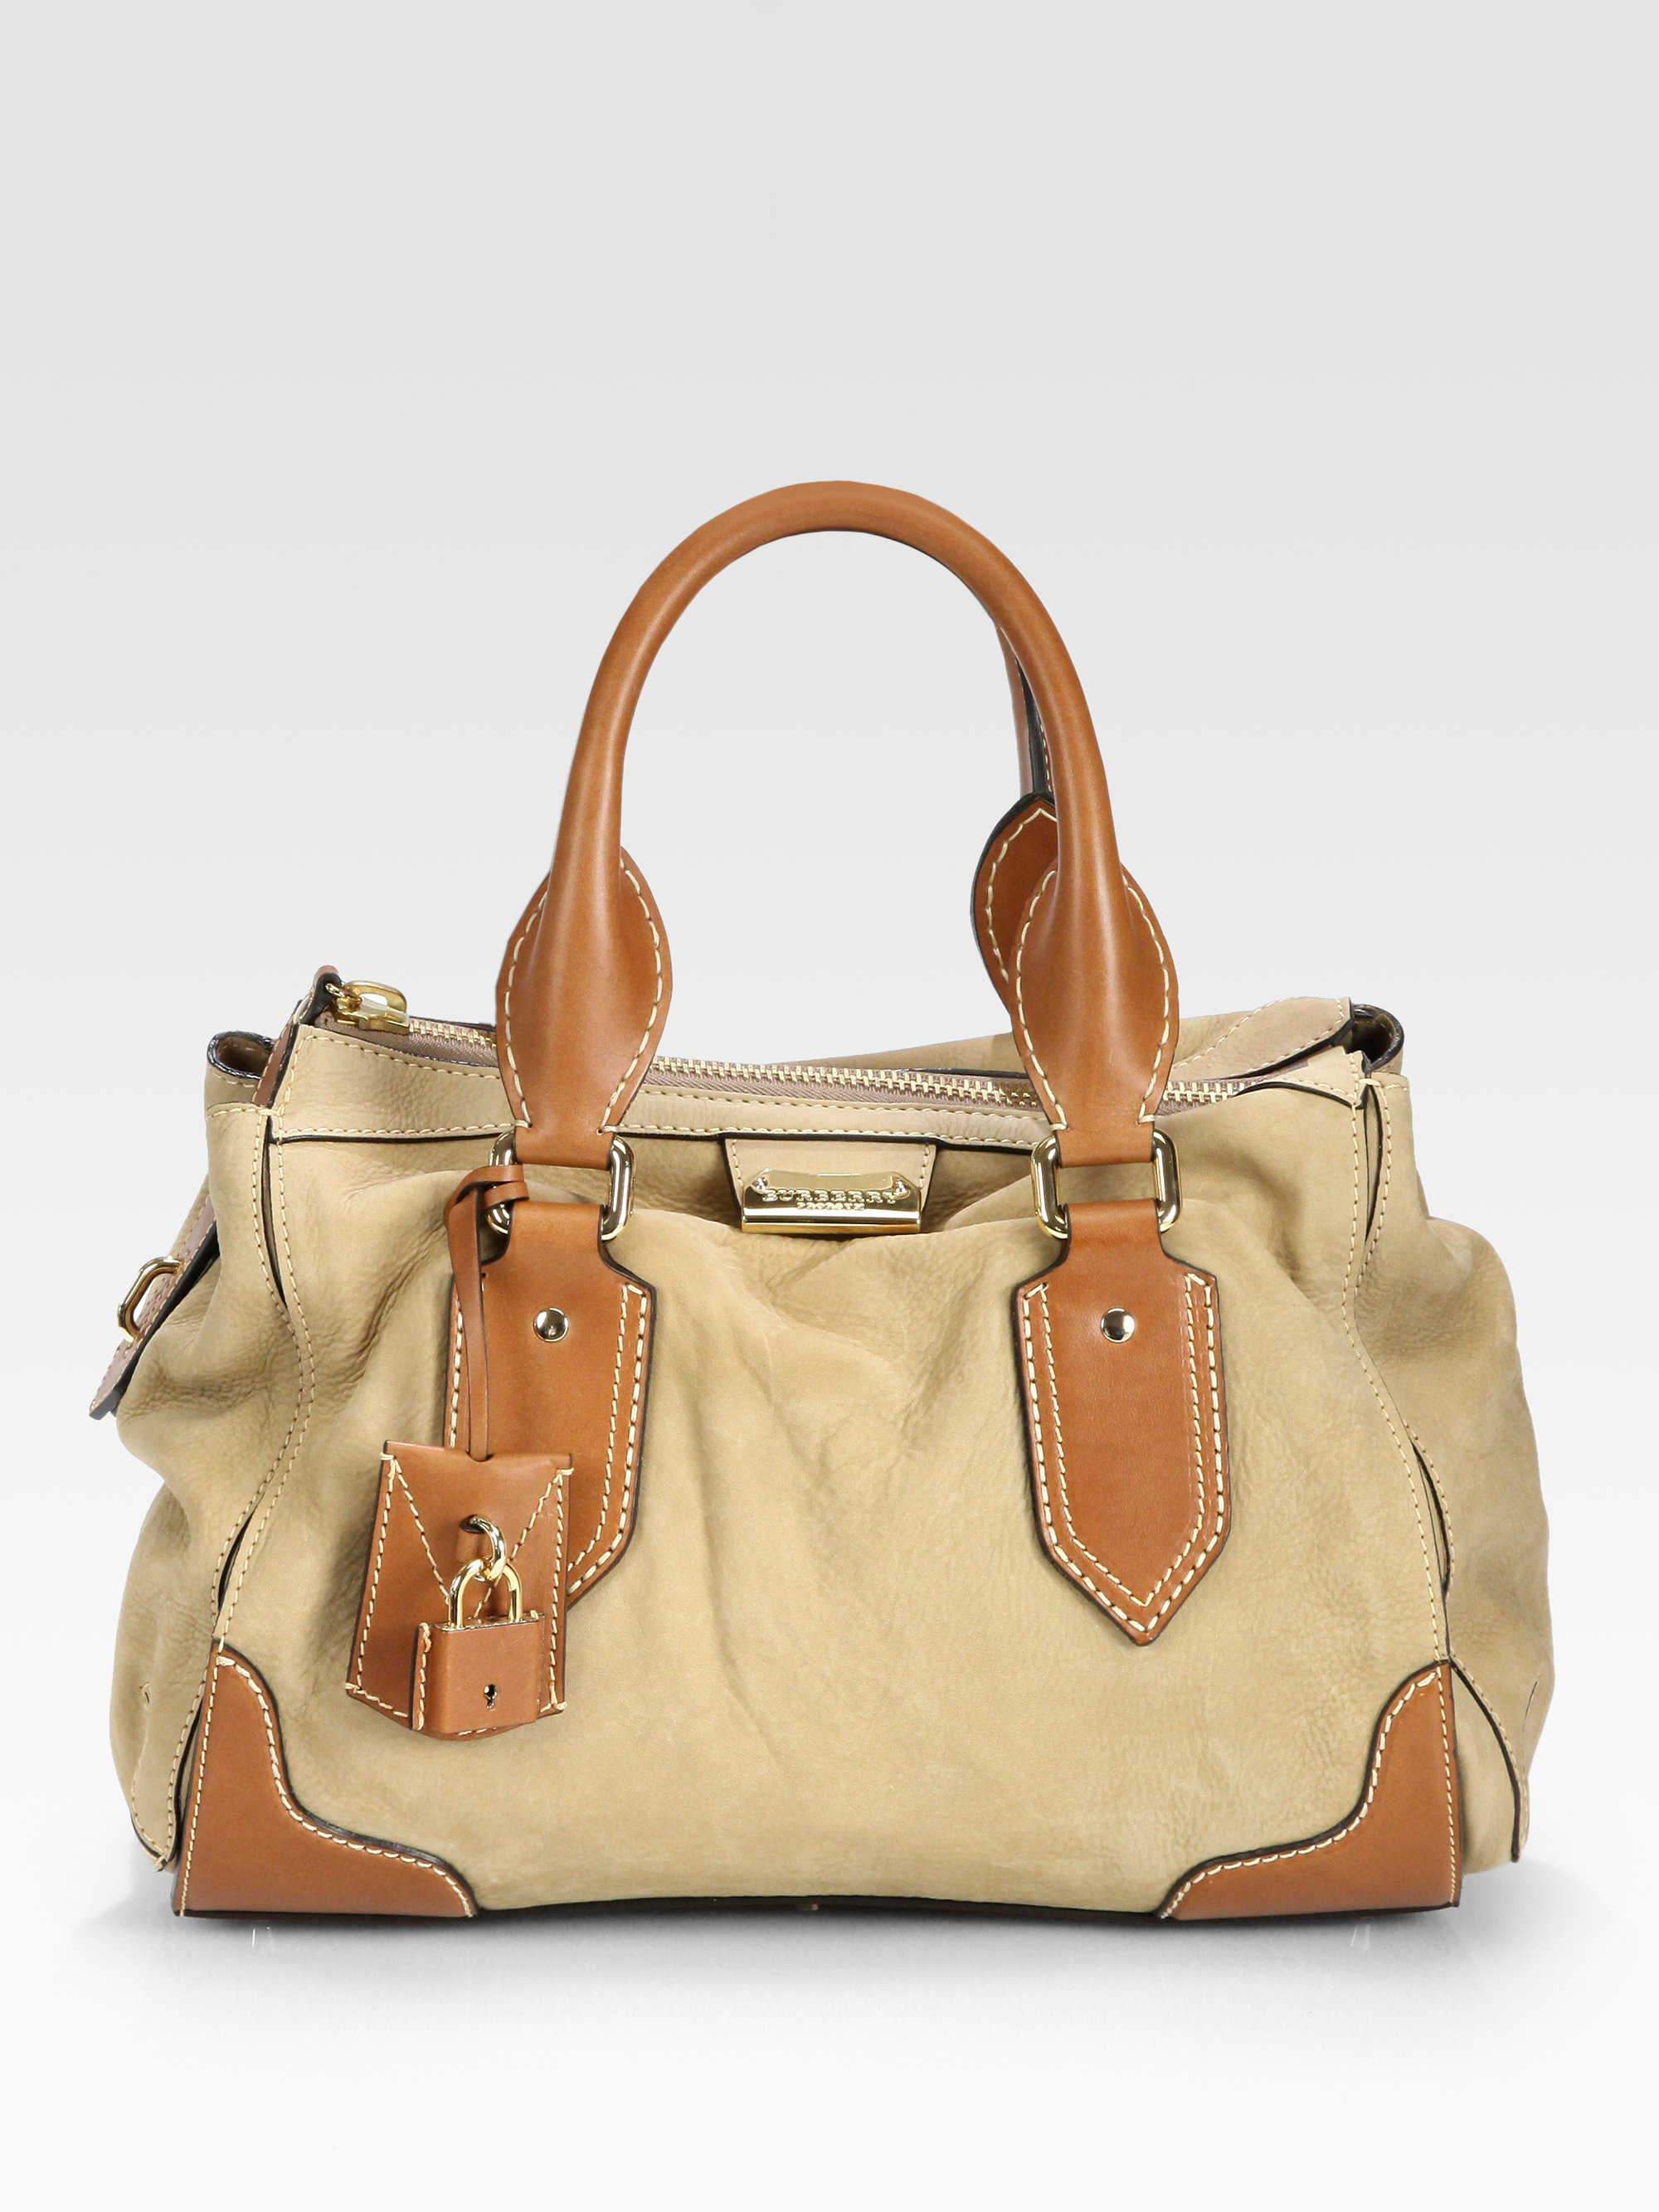 3476d7cba5bb Lyst - Burberry Prorsum Prorsum Gladstone Bowling Bag in Natural